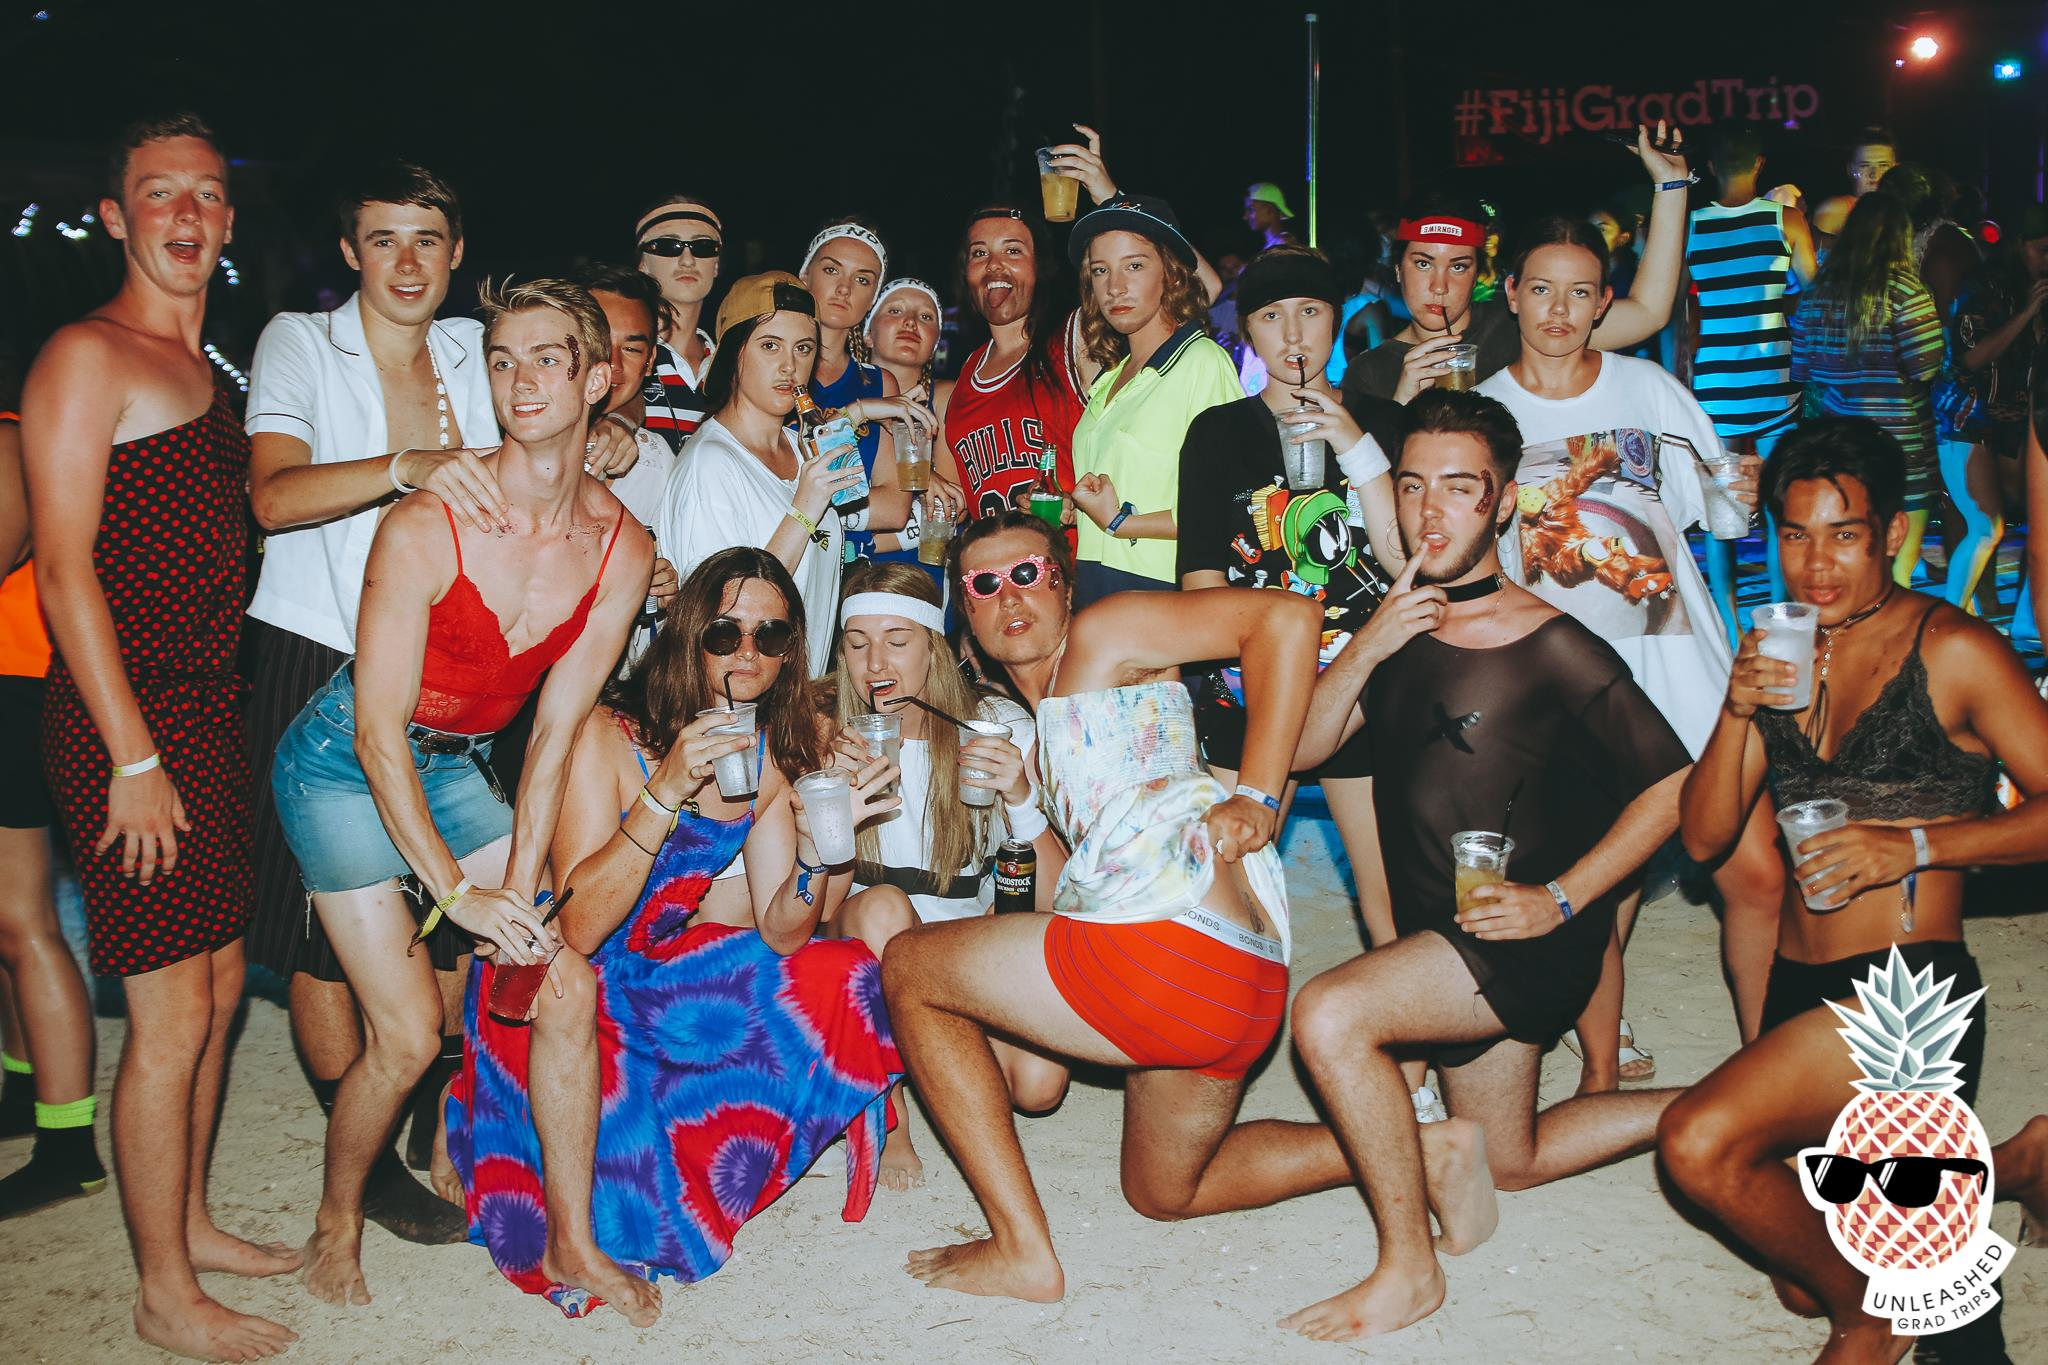 Top 5 Gender Bender Outfits for your #GradTrip ...